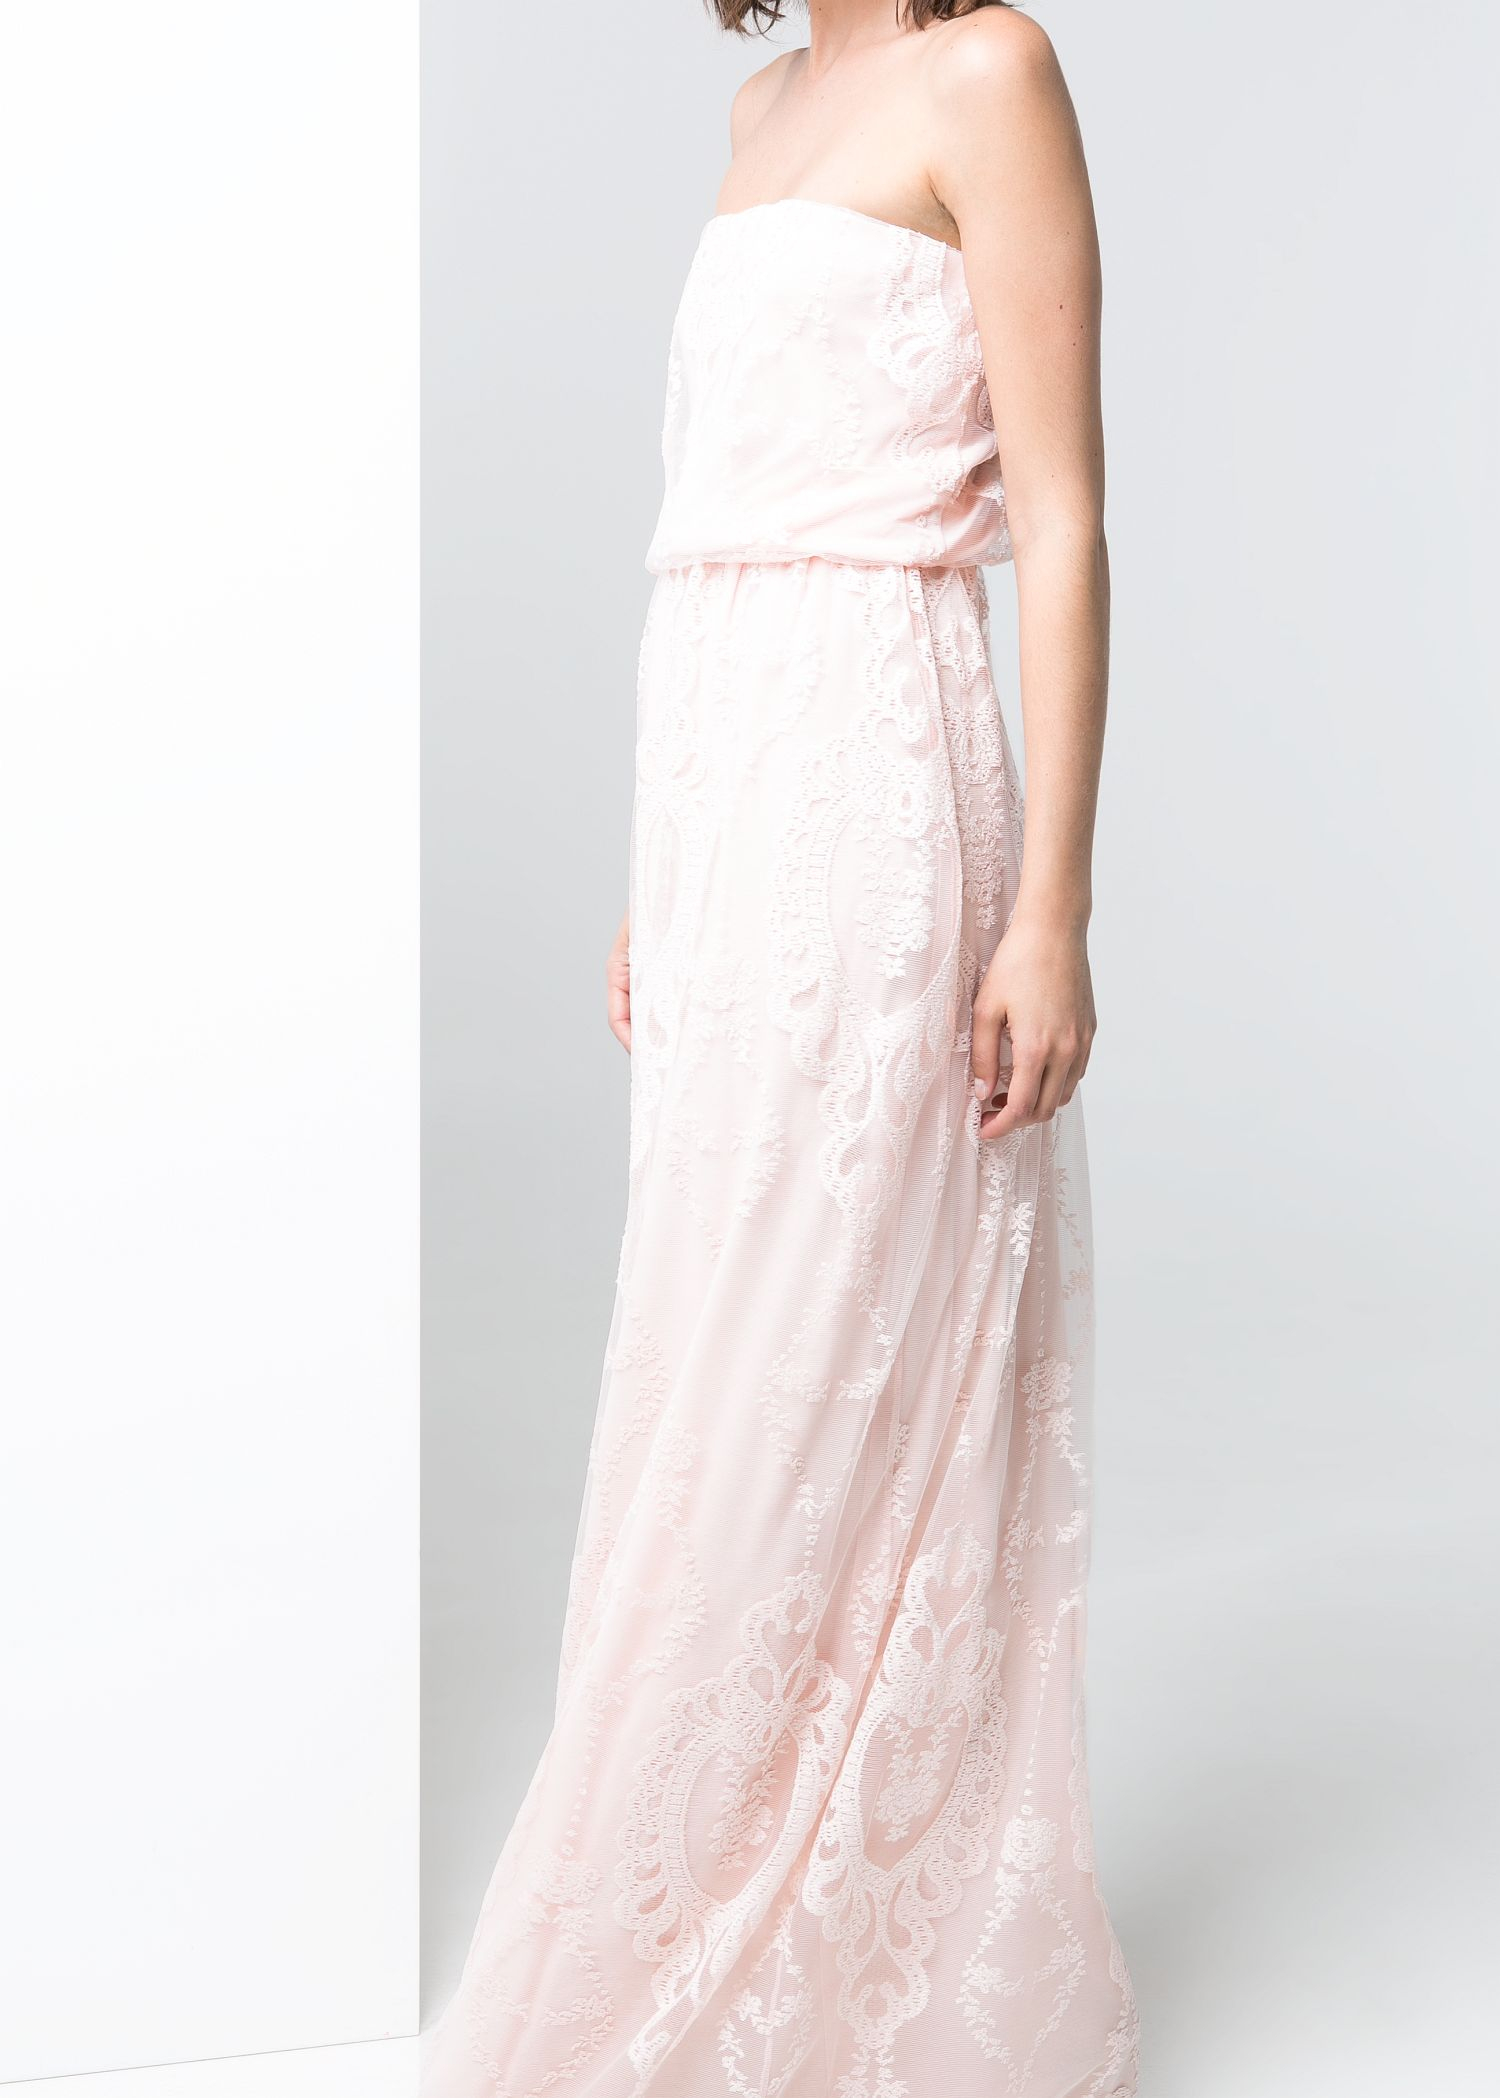 Lyst - Mango Tulle Gown in Pink